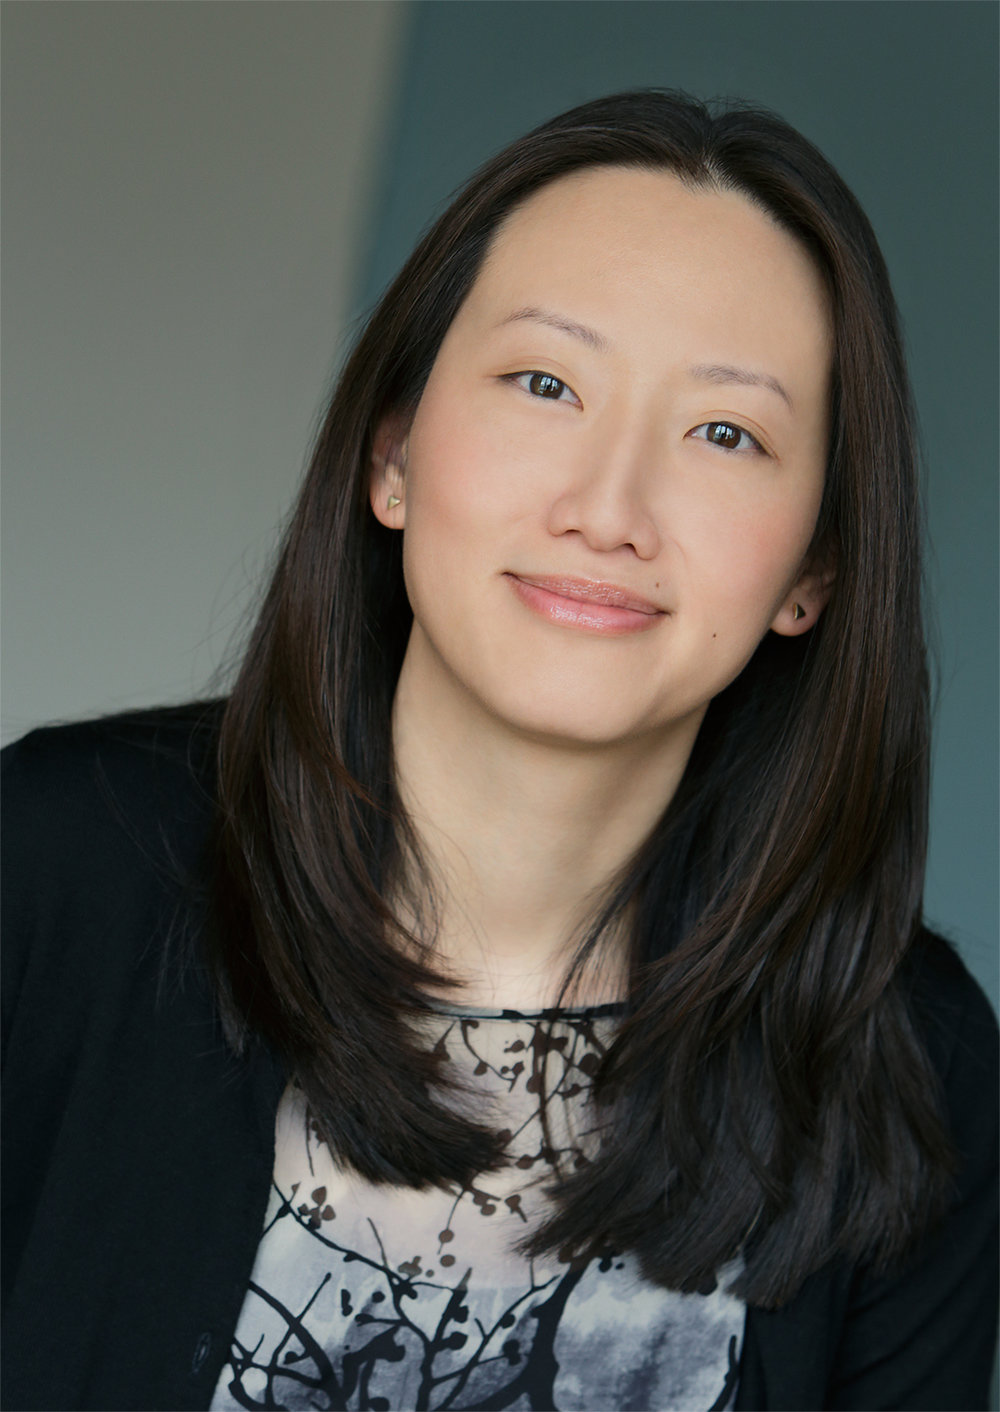 Asian Female Headshot Corporate